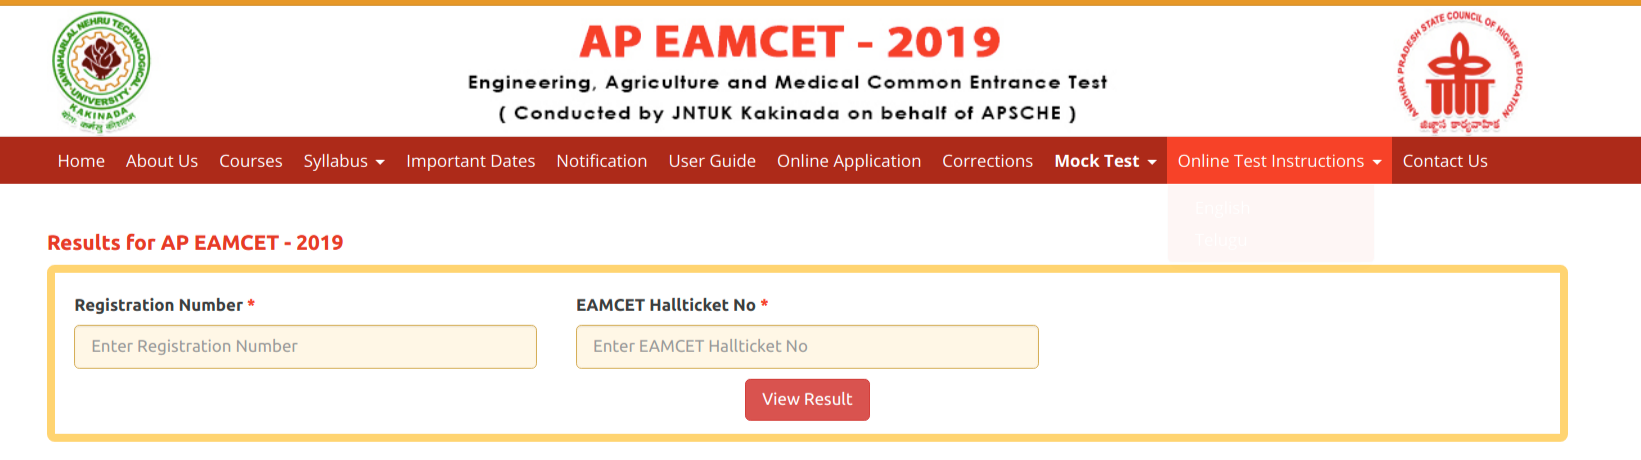 AP EAMCET 2019 Result Login